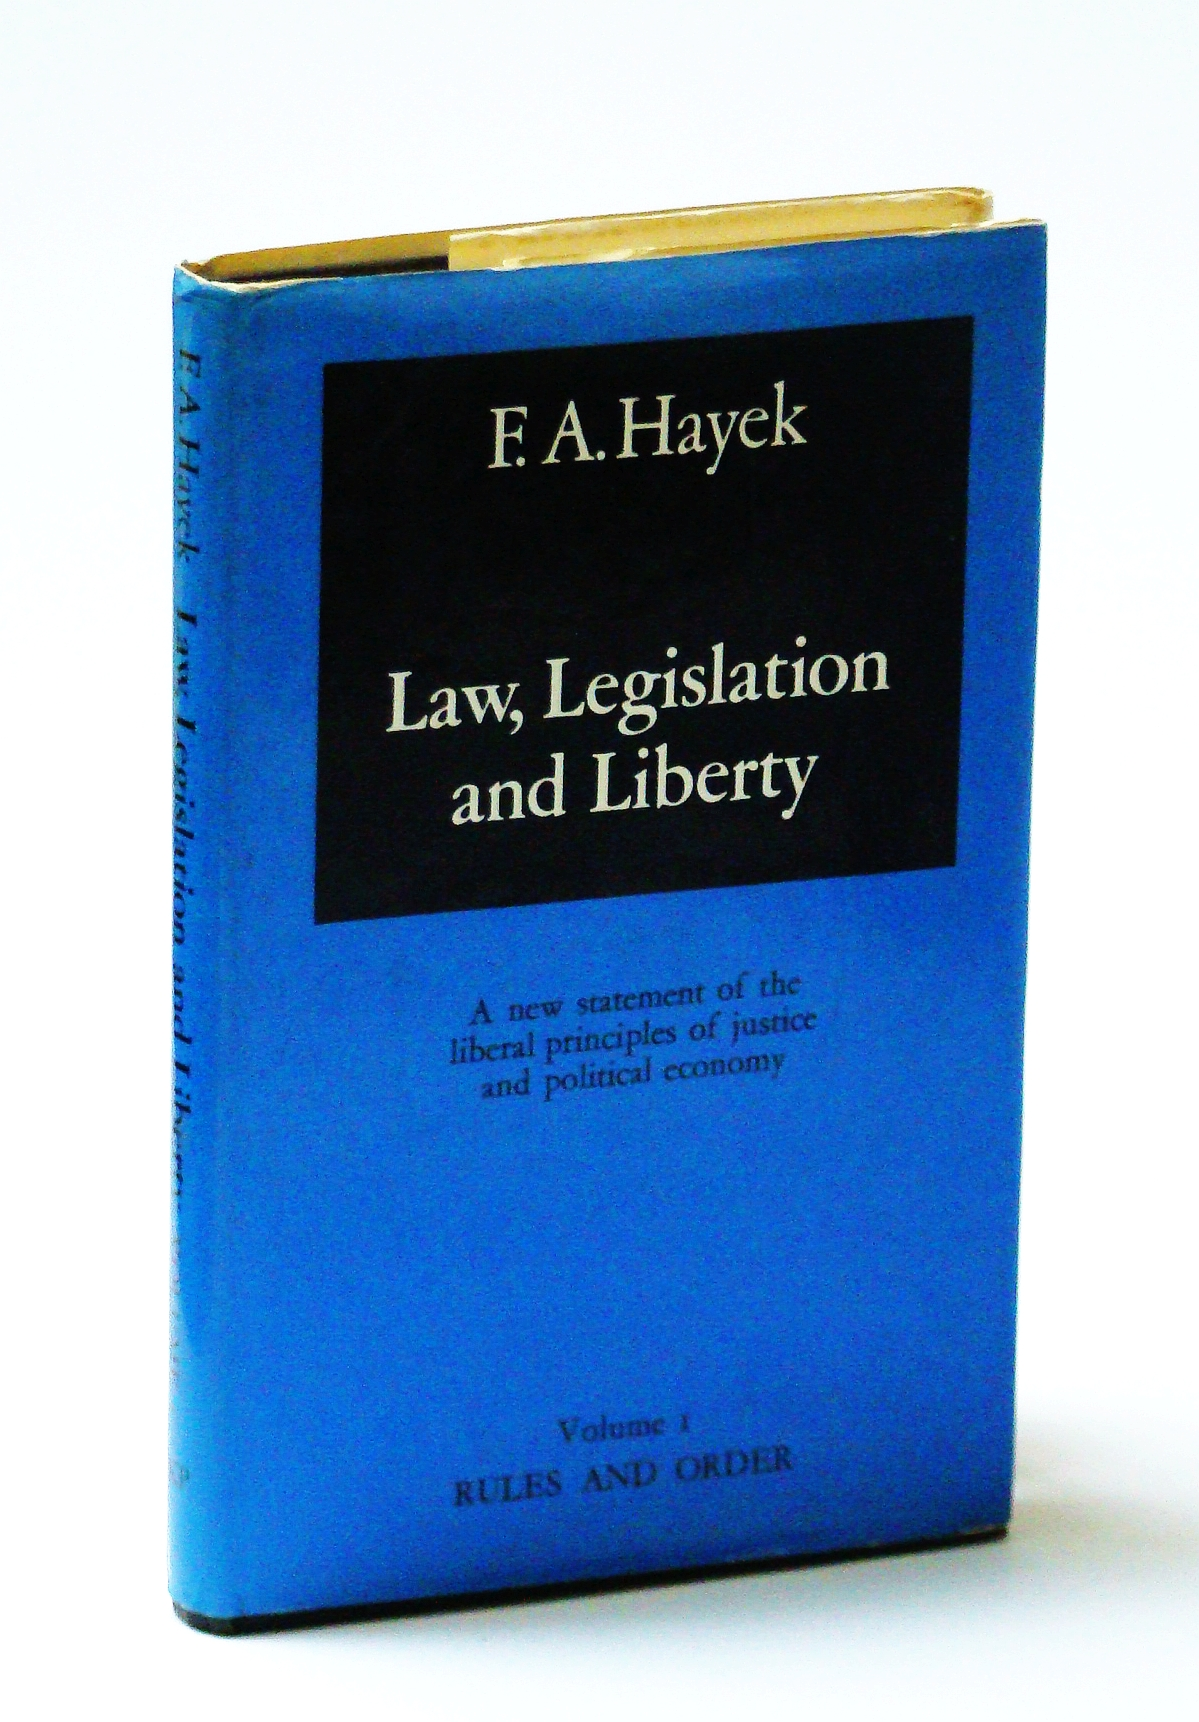 Image for Rules and order (His Law, legislation and liberty)